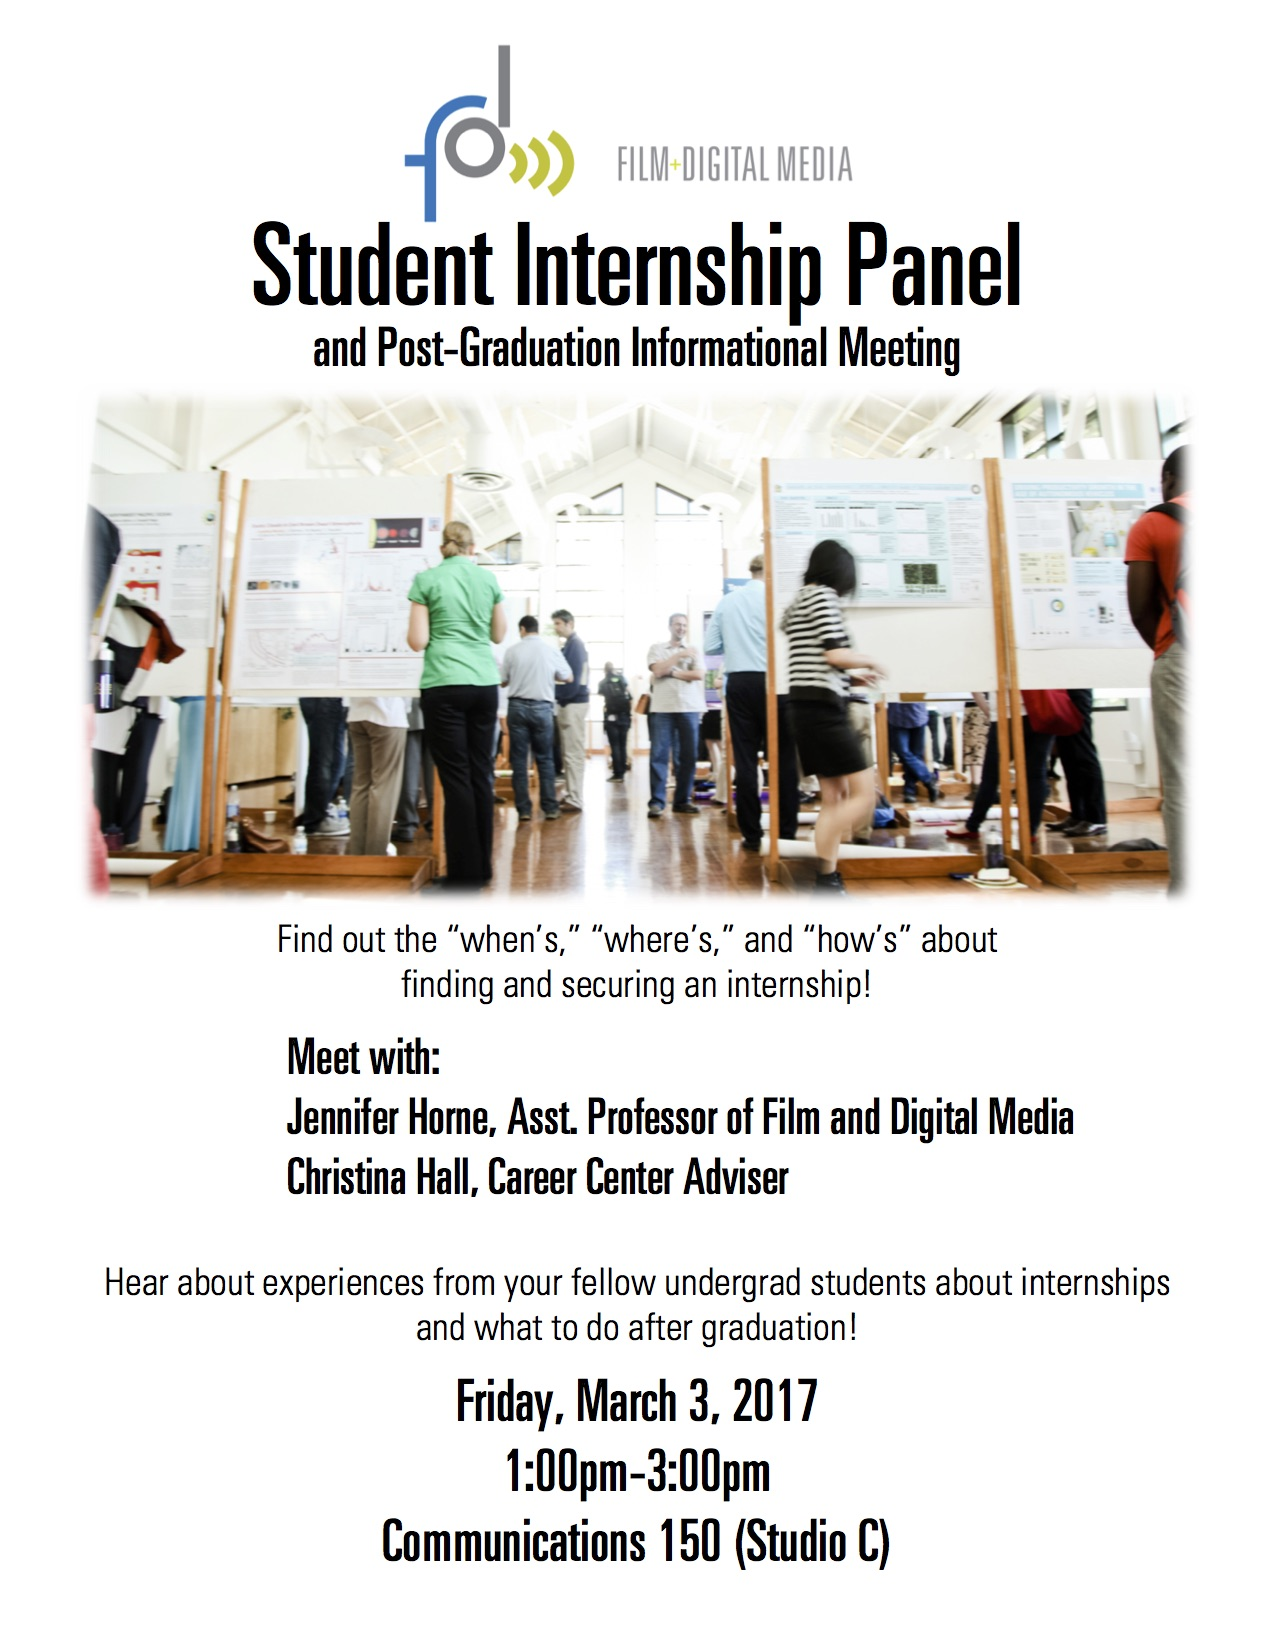 Flyer for Internship Panel